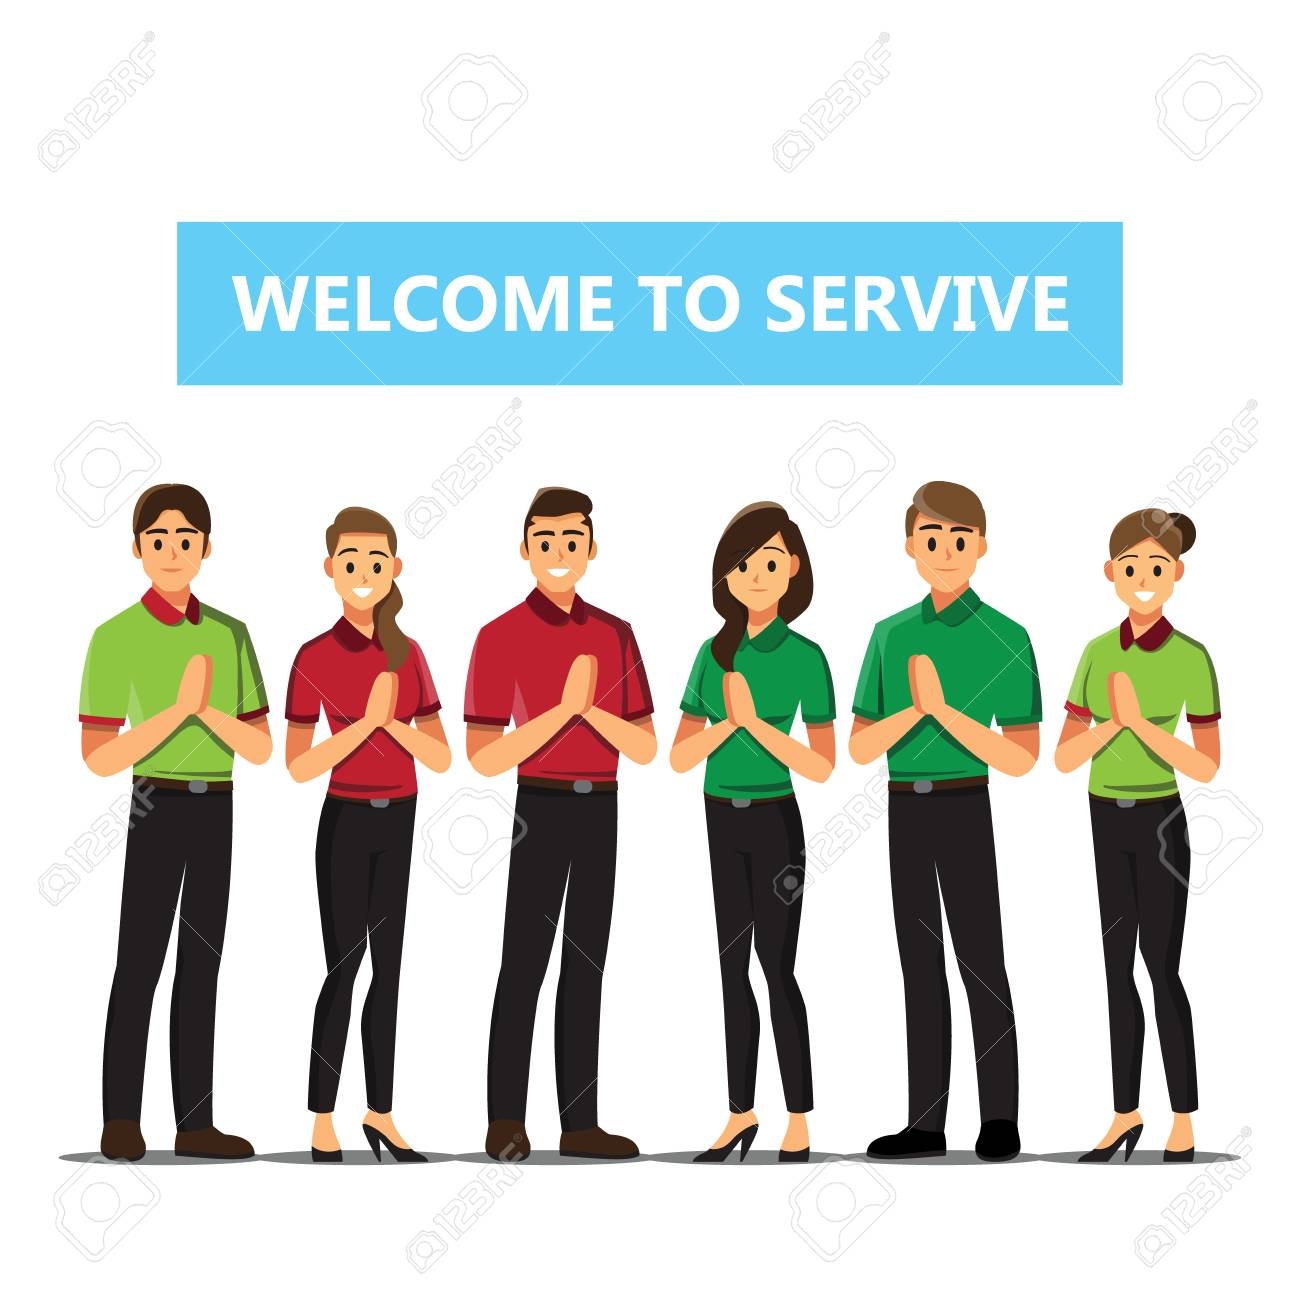 Receptionist Business People Welcome Concept Cartoon Illustration Royalty Free Cliparts Vectors And Stock Illustration Image 100408357